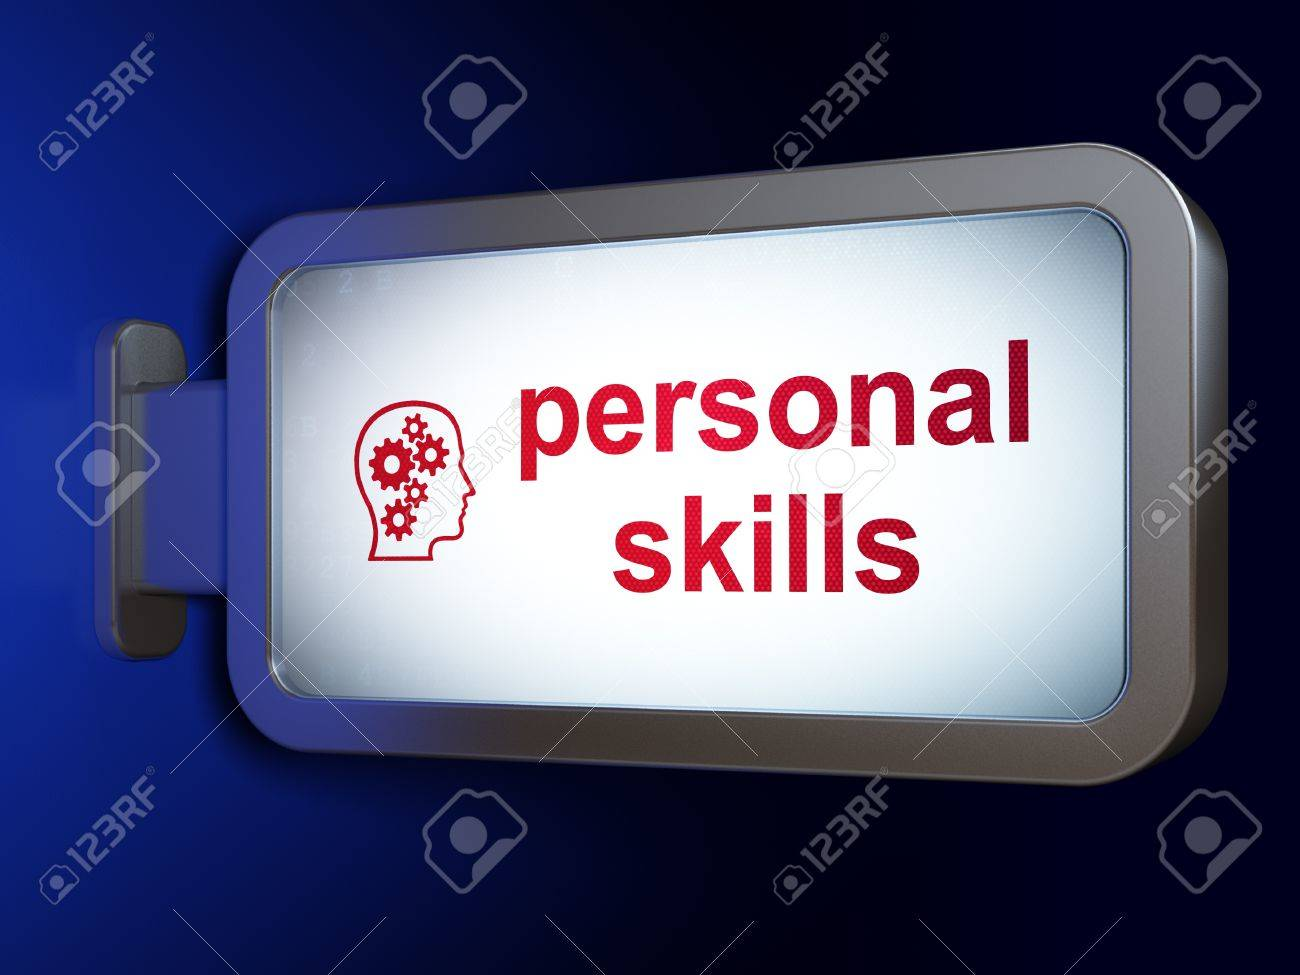 education concept personal skills and head gears on education concept personal skills and head gears on advertising billboard background 3d render stock